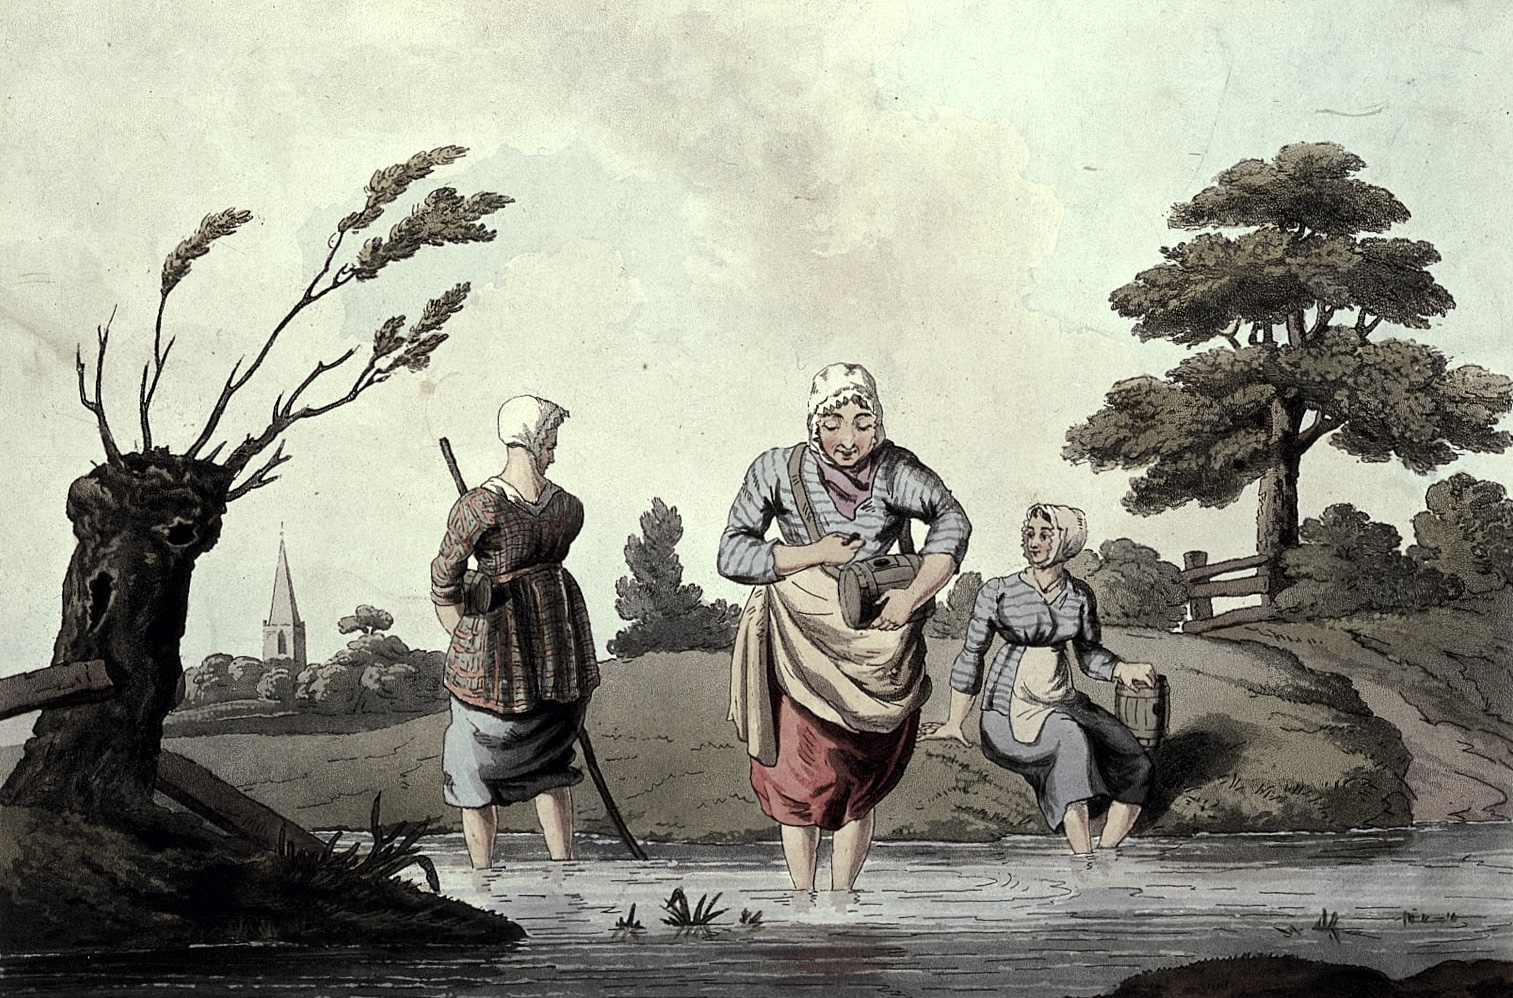 Three women wading in a stream gathering leeches